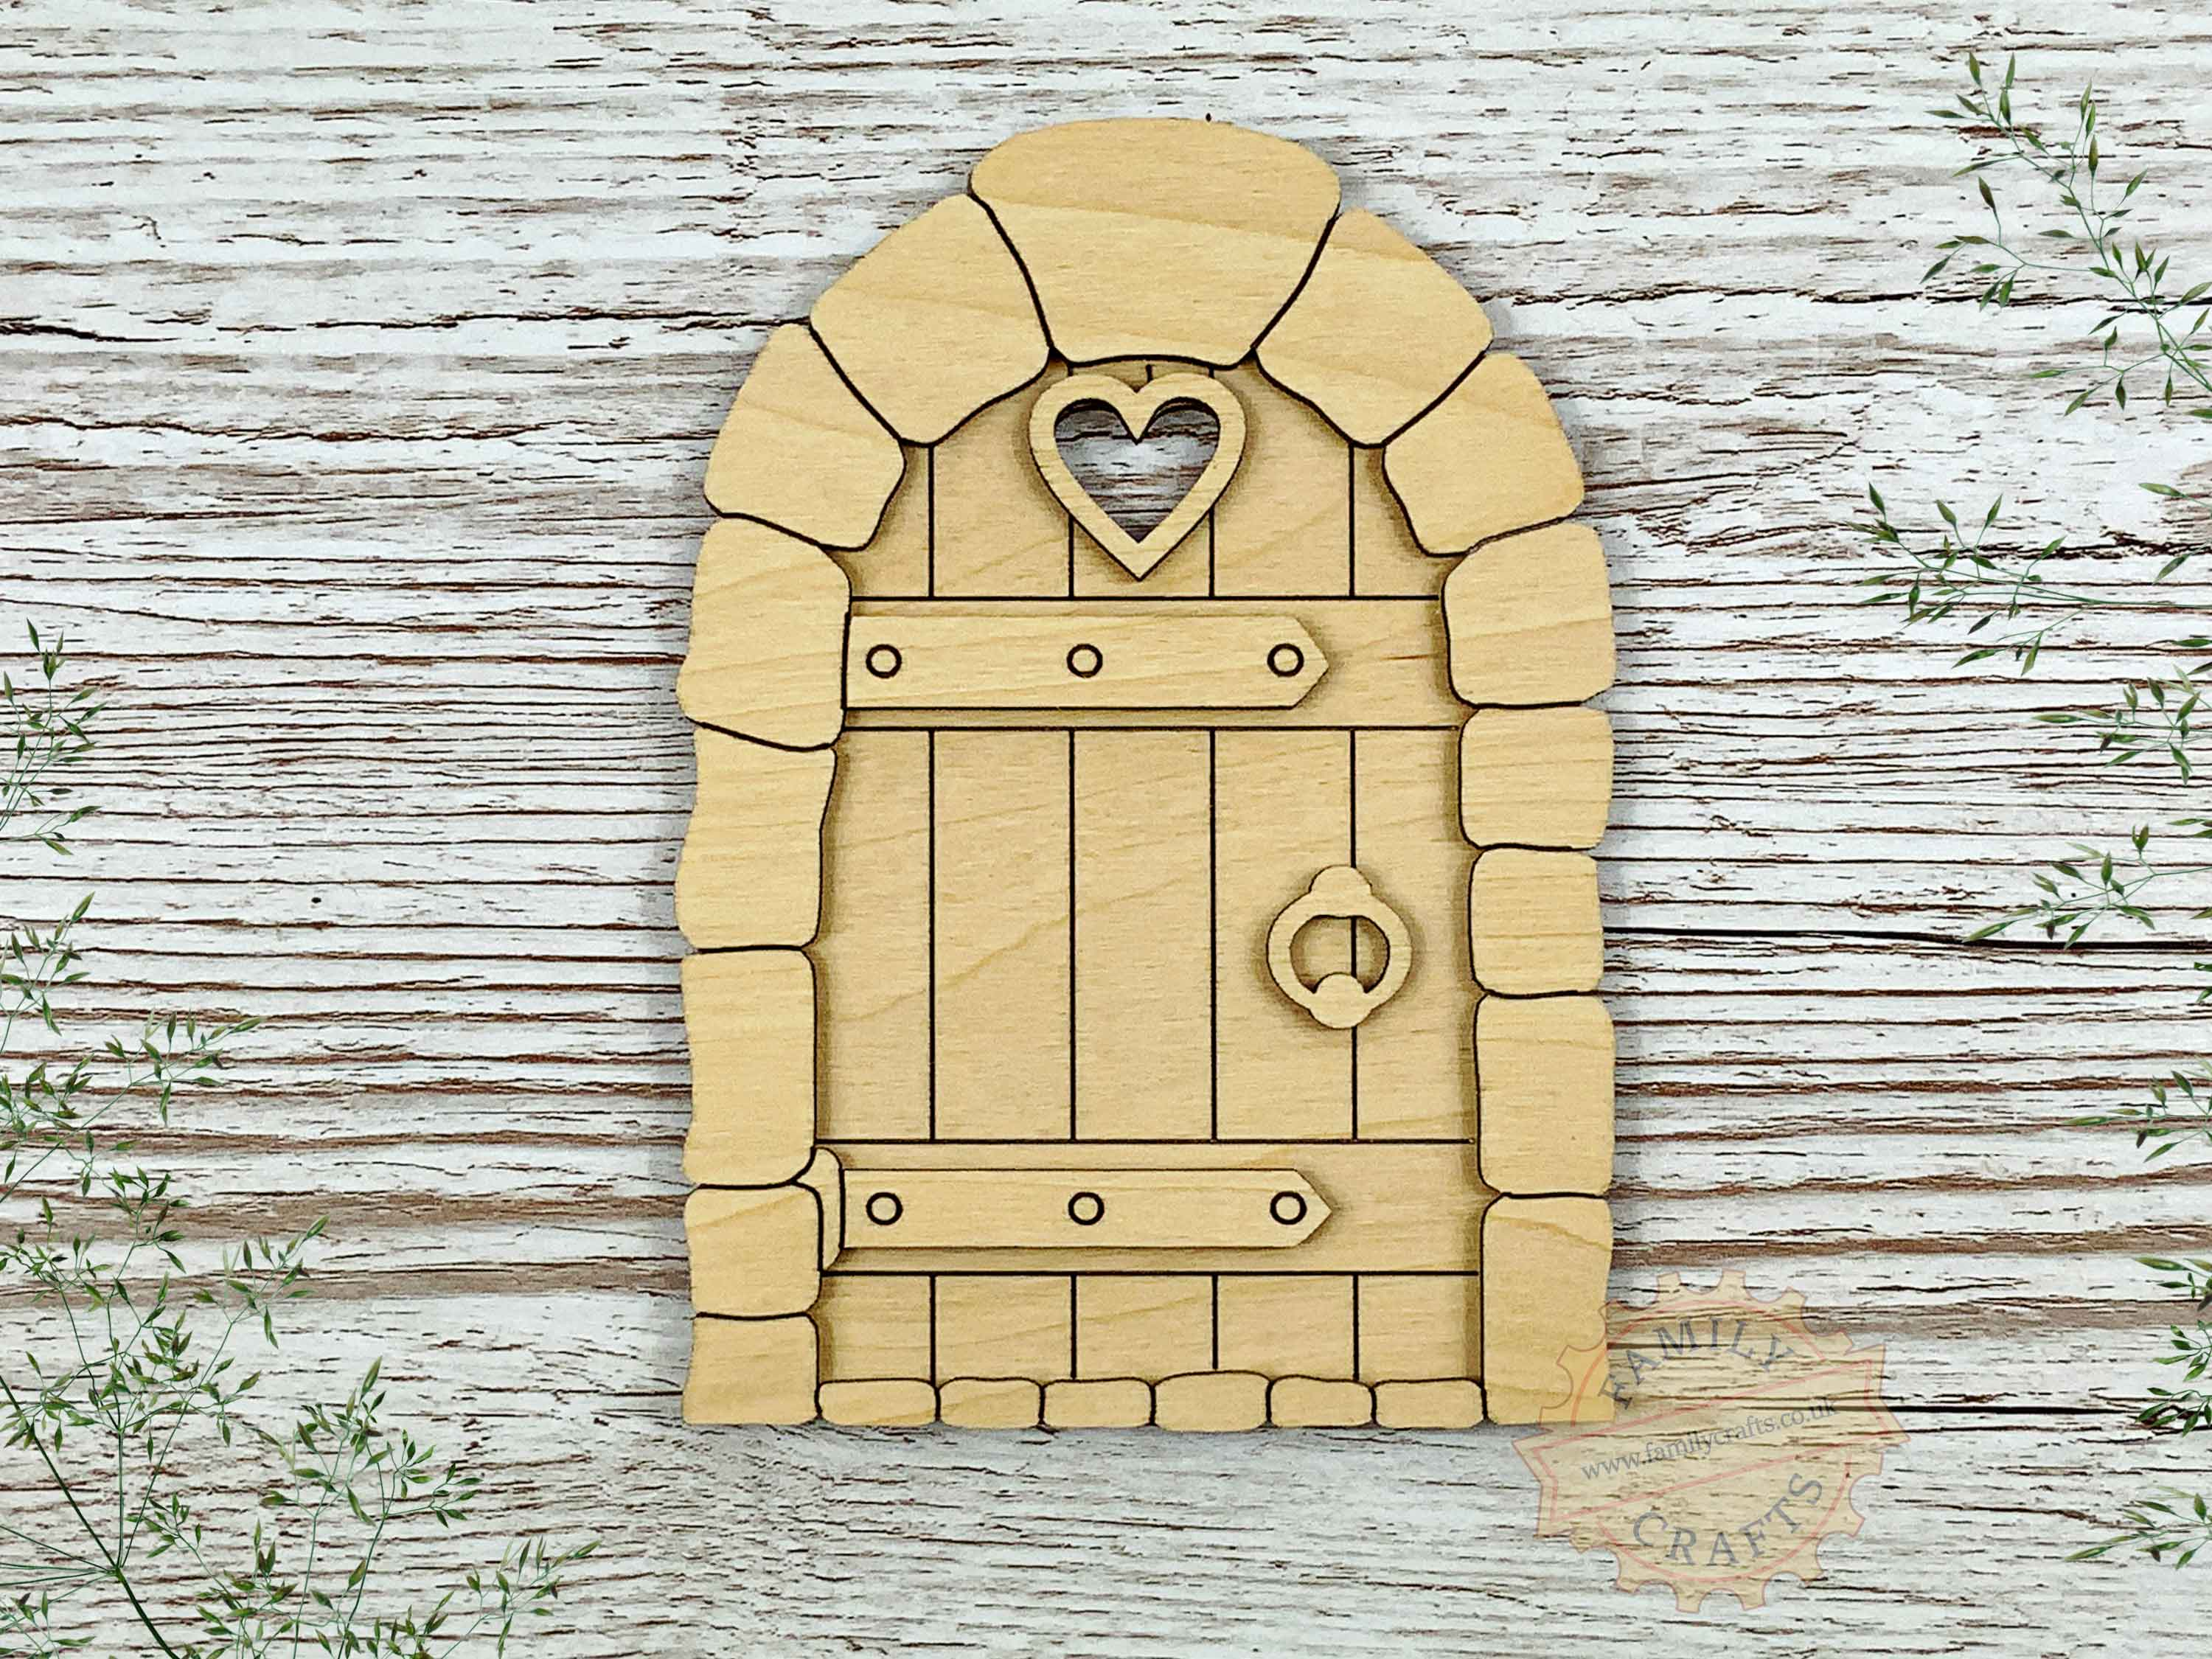 plywood cobblestone fairy door kit